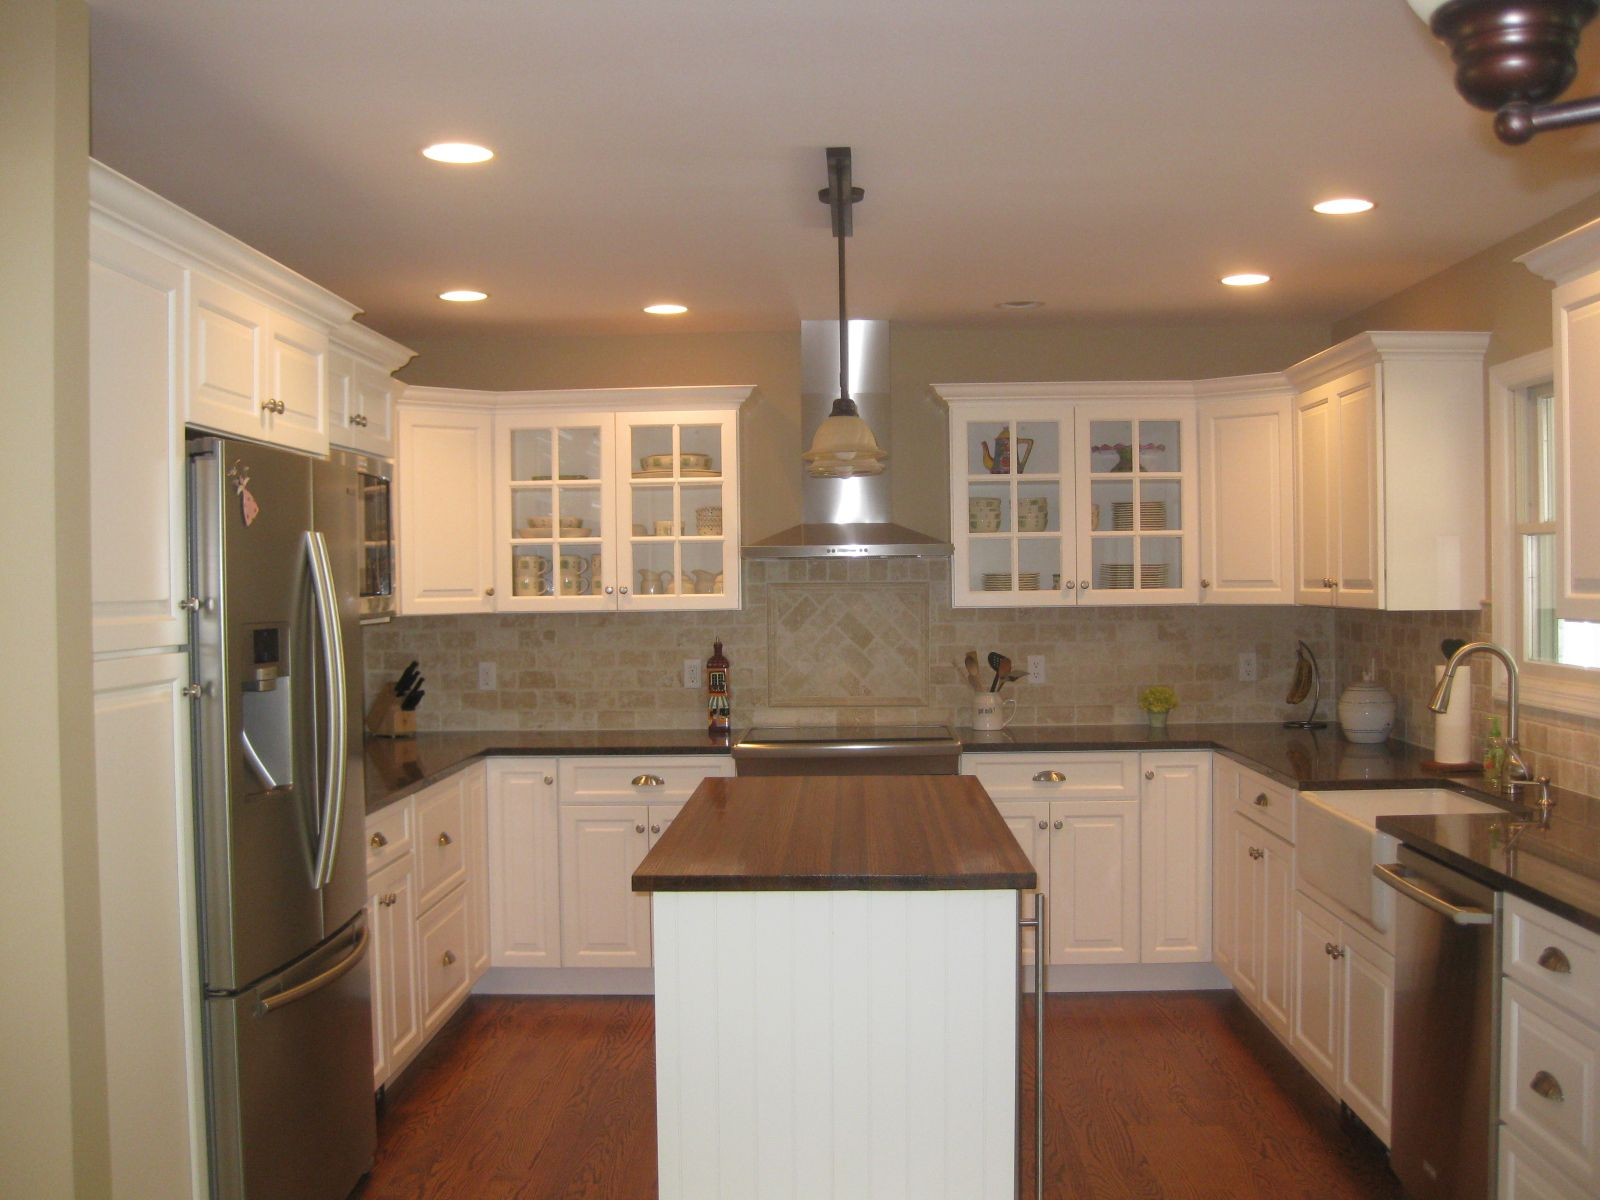 u shaped kitchen layout with island u shaped kitchen layout YFSQGBM